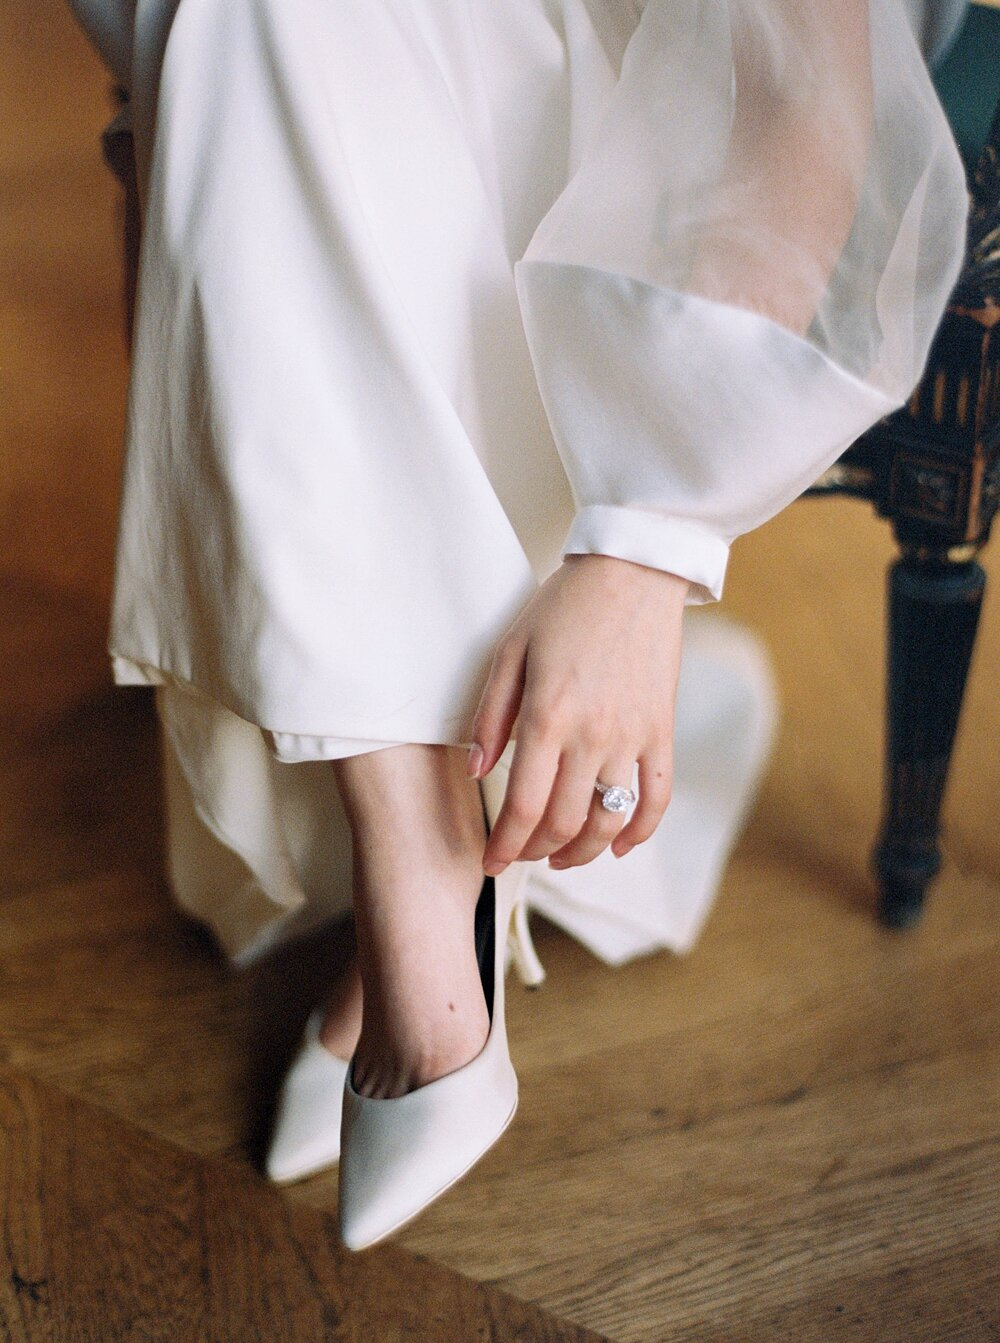 Bride's hand touching her shoe as if she's put it on recently, showing off her engagement ring